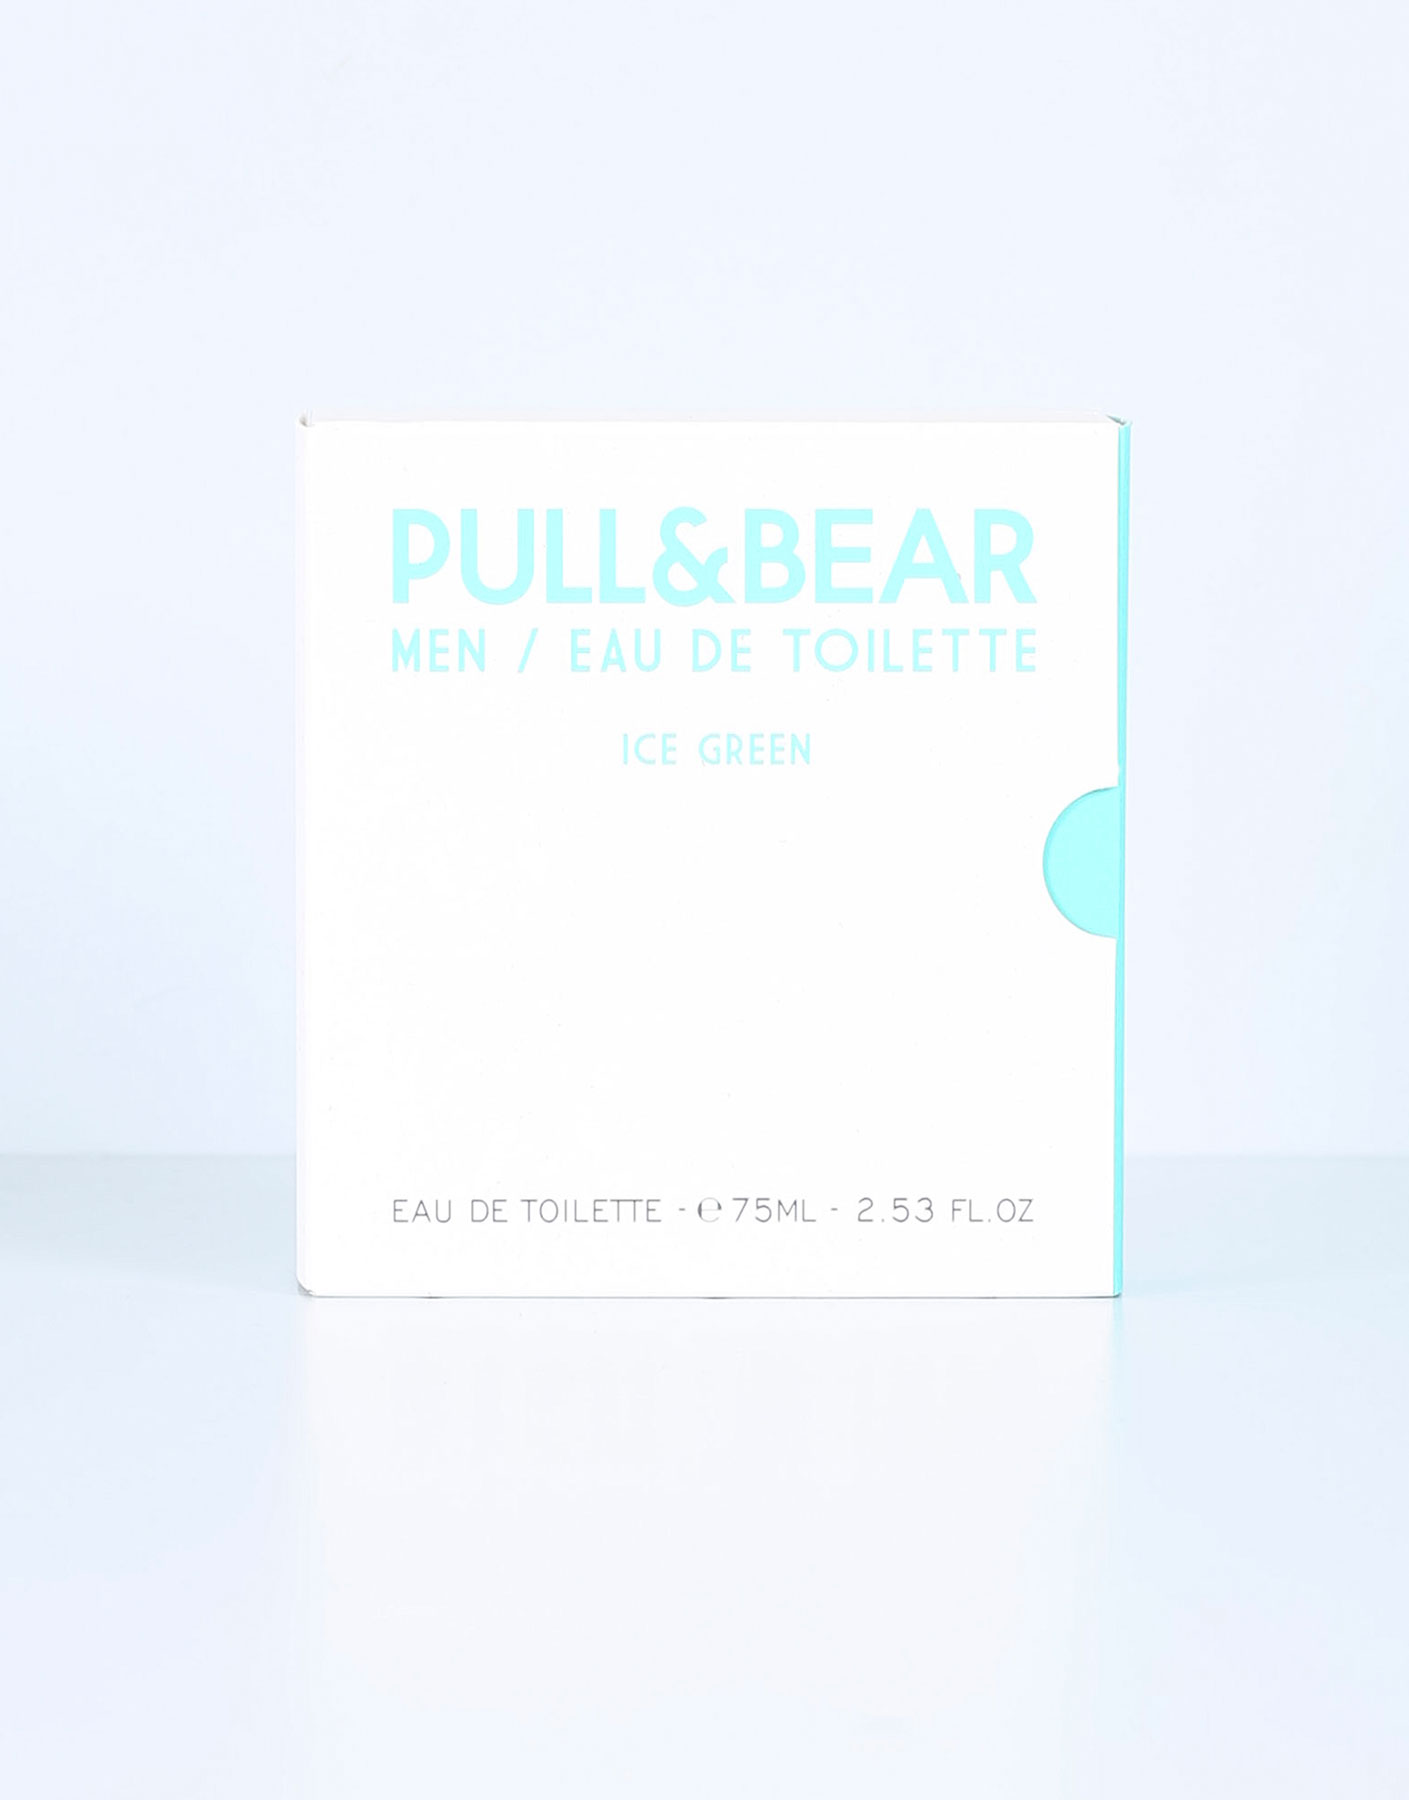 Pull & bear ice green 75 ml eau de toilette